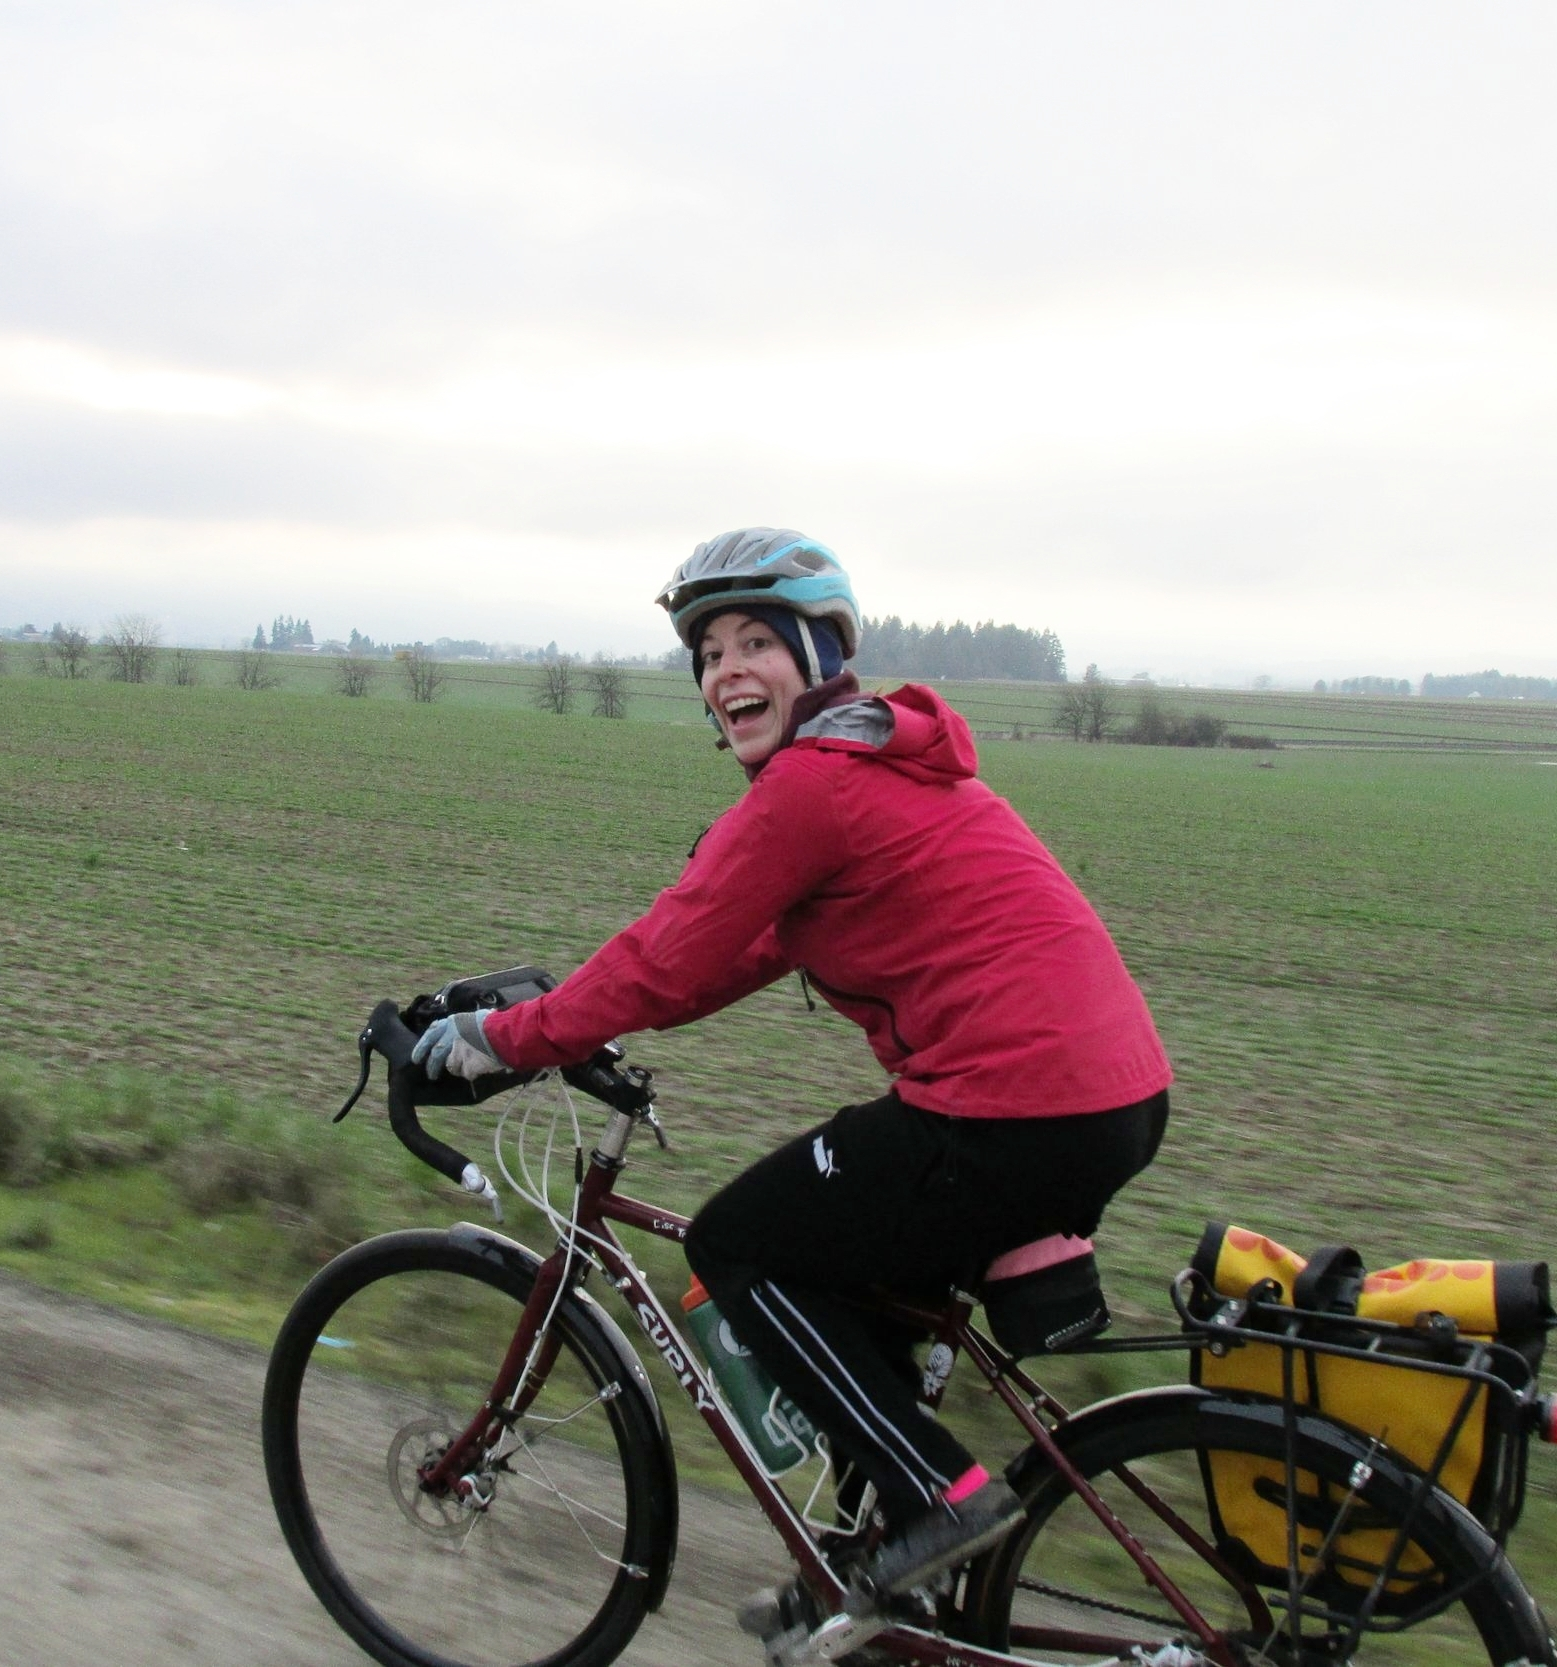 When Katie bicycled across the United States with her boyfriend, she wrote a poem every day. -